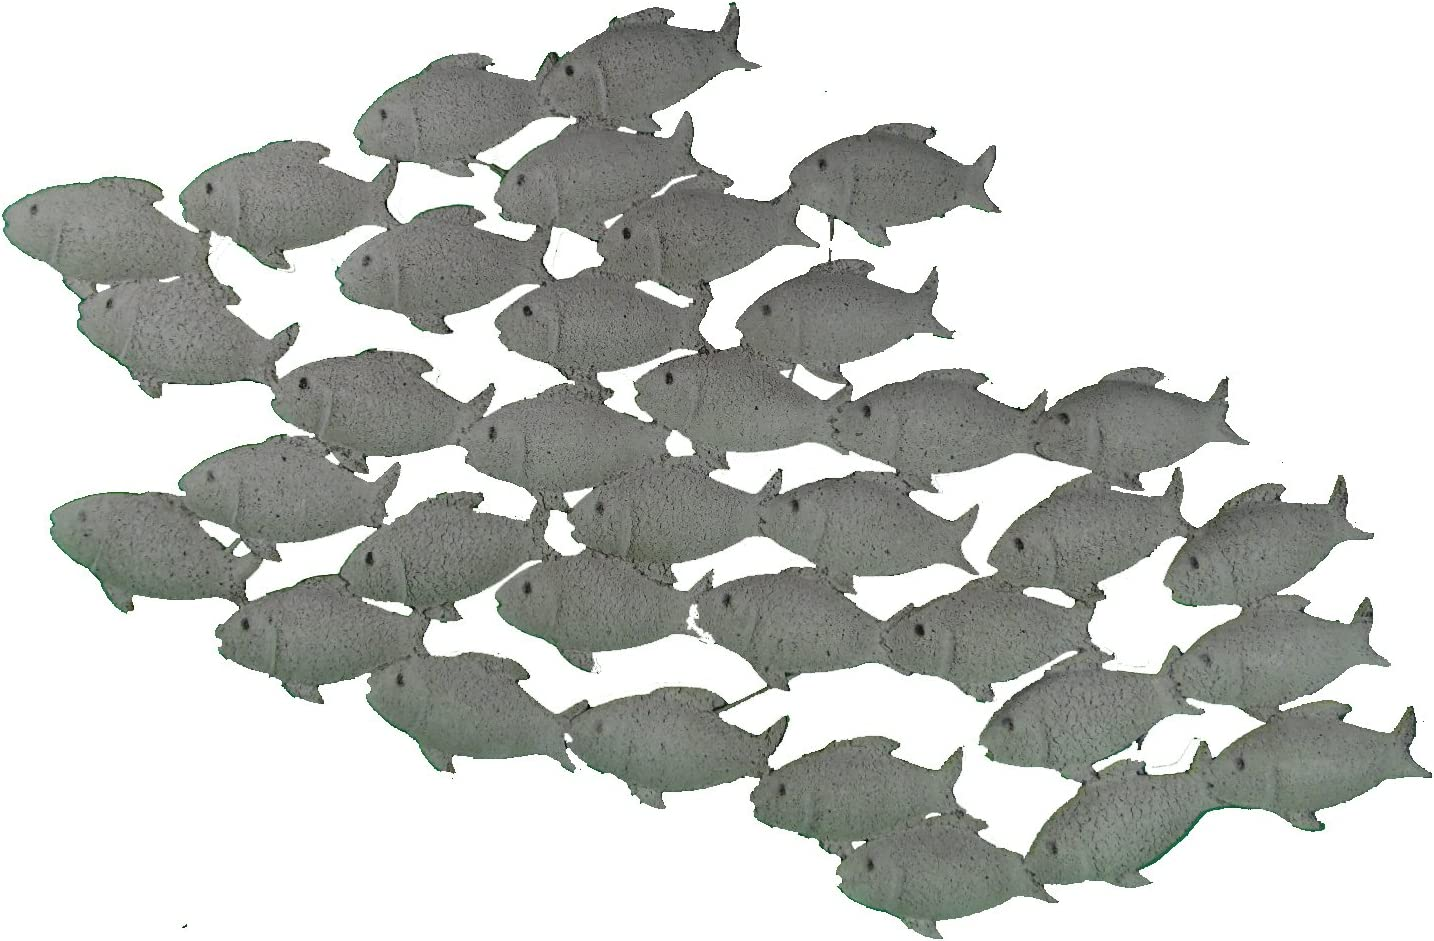 SD - Adorno de pared (hierro), diseño de peces, color gris mate